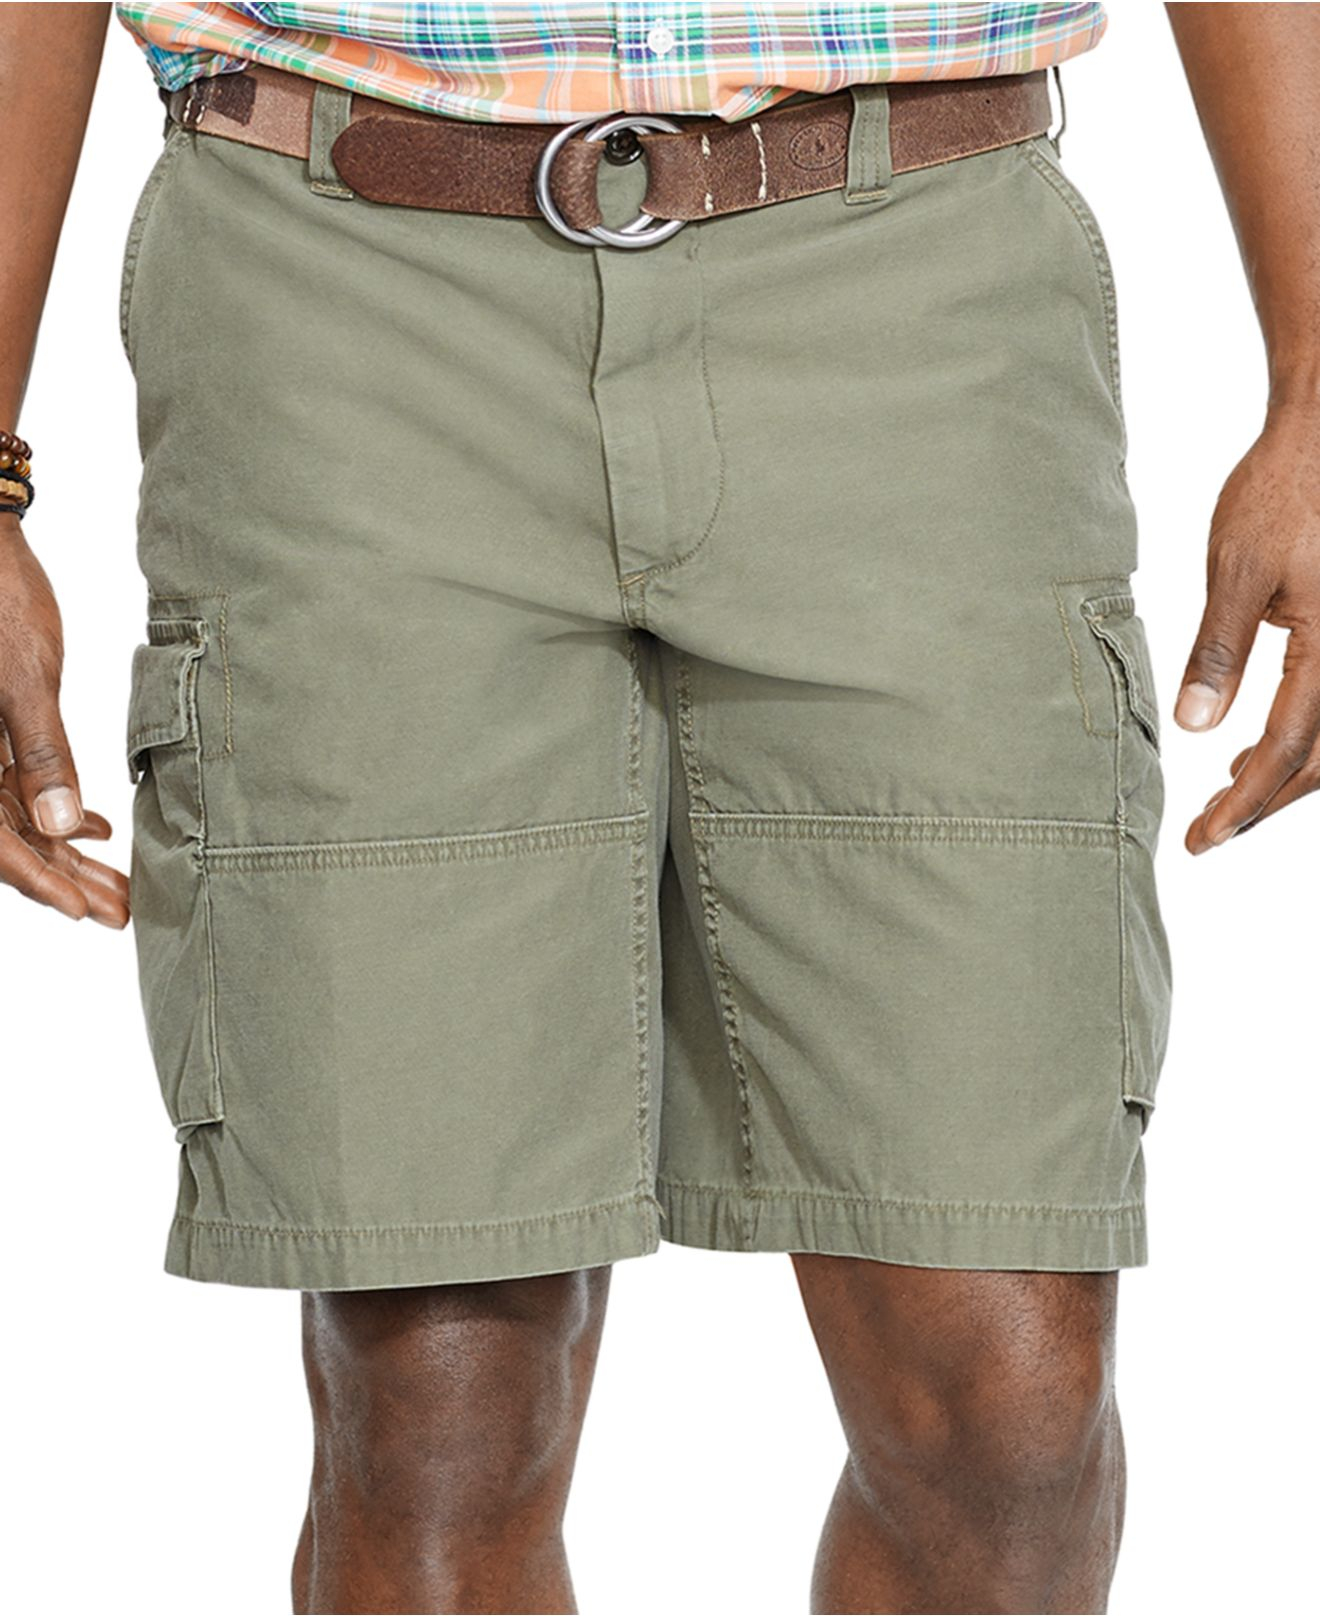 Find great deals on eBay for big and tall cargo shorts. Shop with confidence.